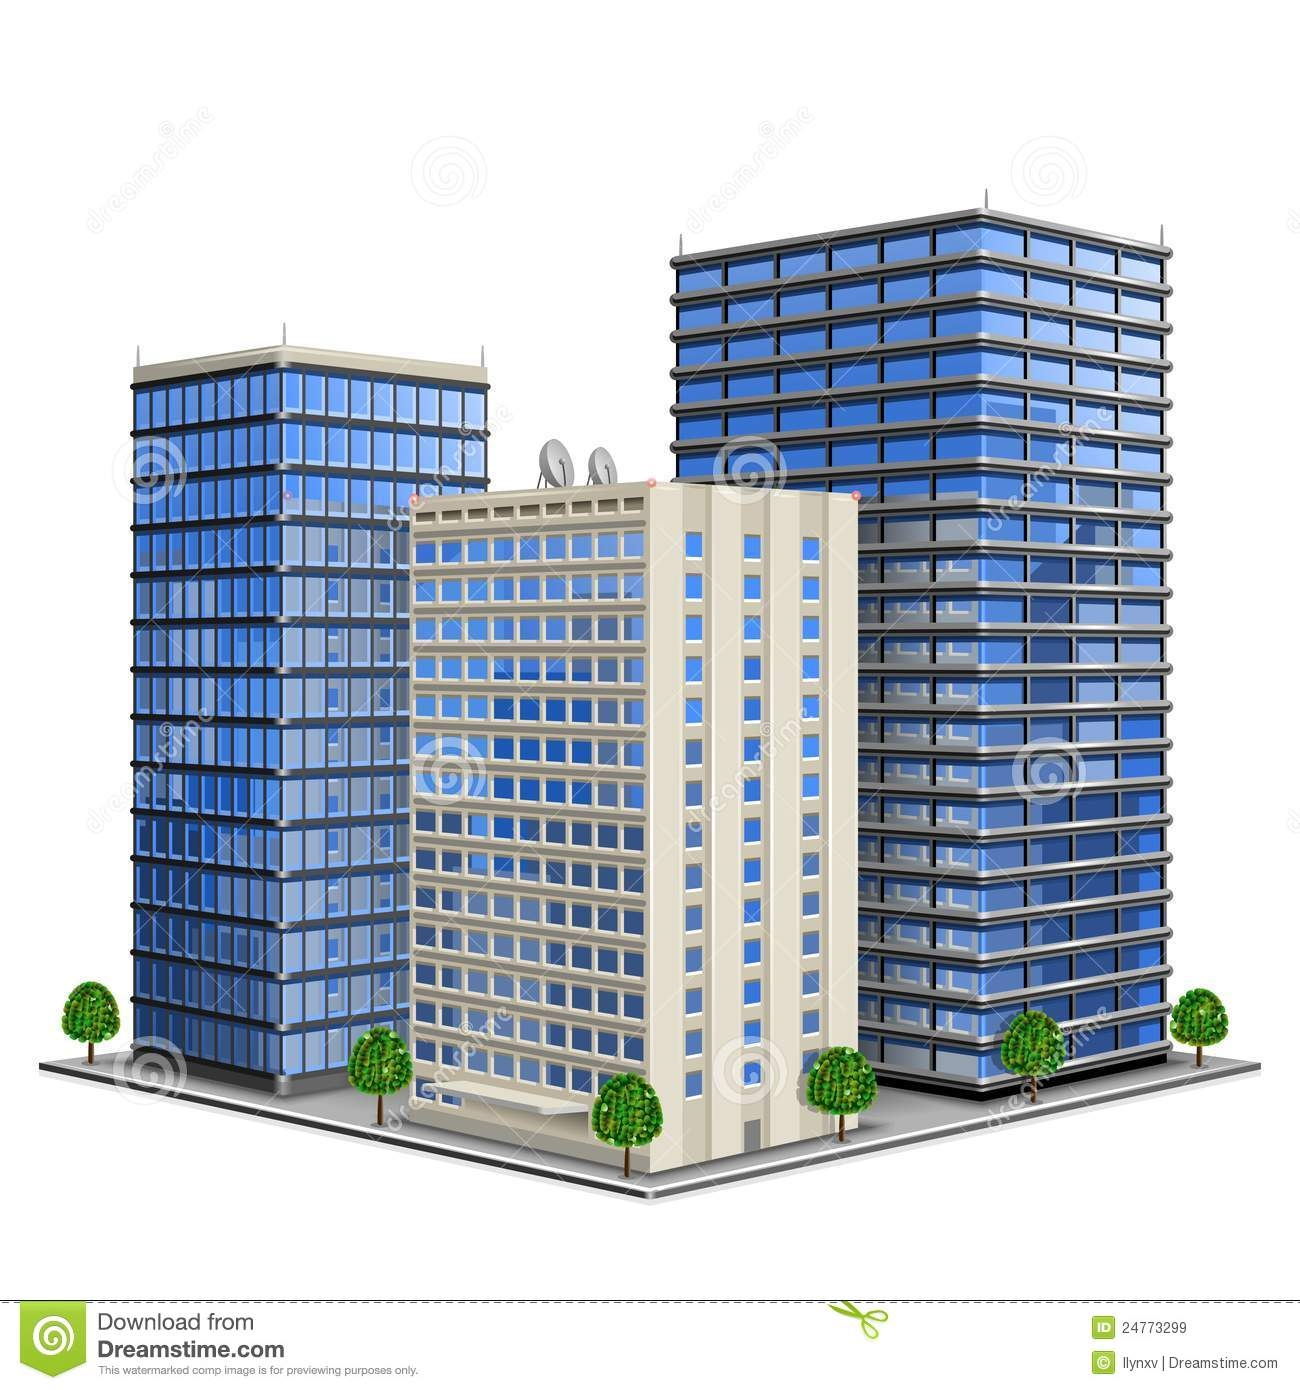 Awesome collection digital o. Buildings clipart corporate building